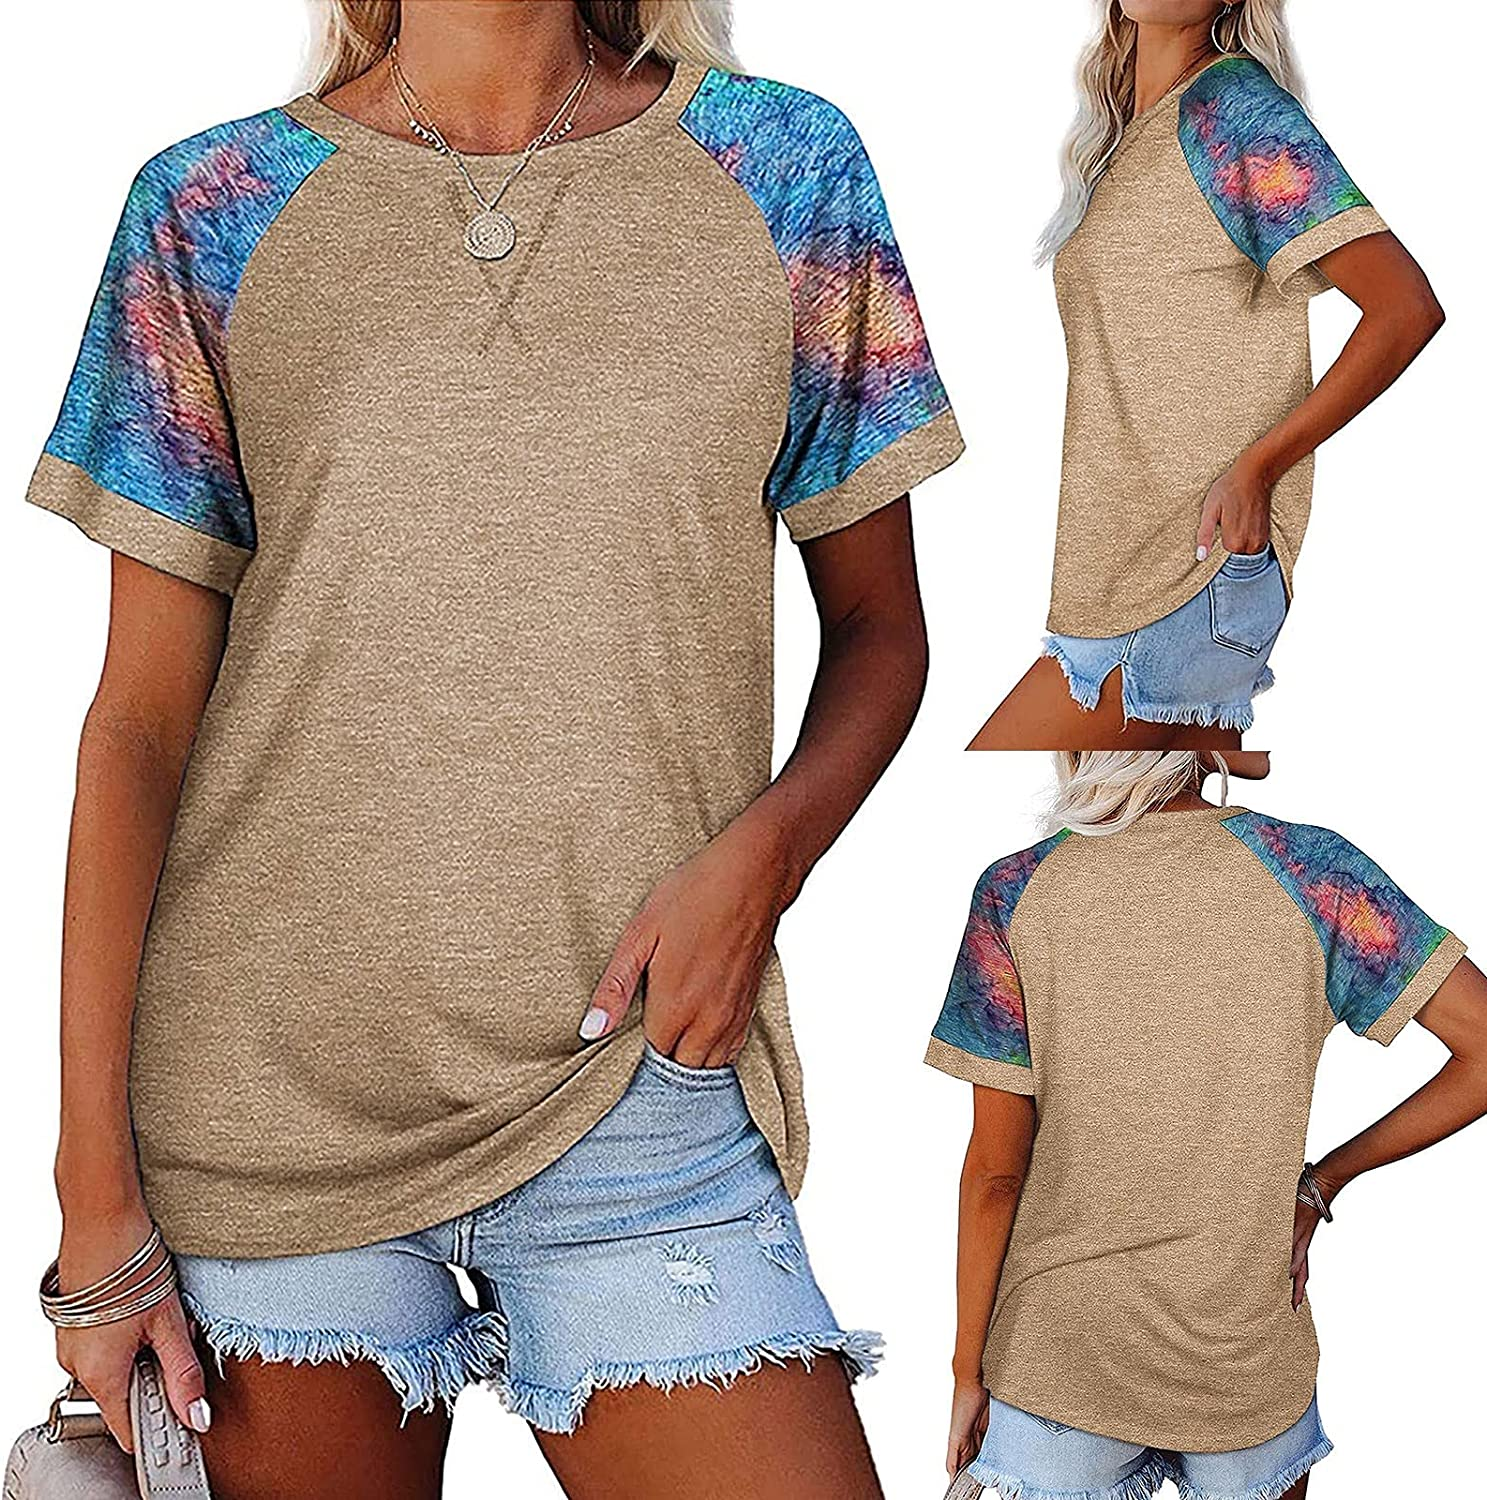 T Shirt for Women trend rank Summer Casual Short Tees Color Sleeve Max 54% OFF Sp Loose